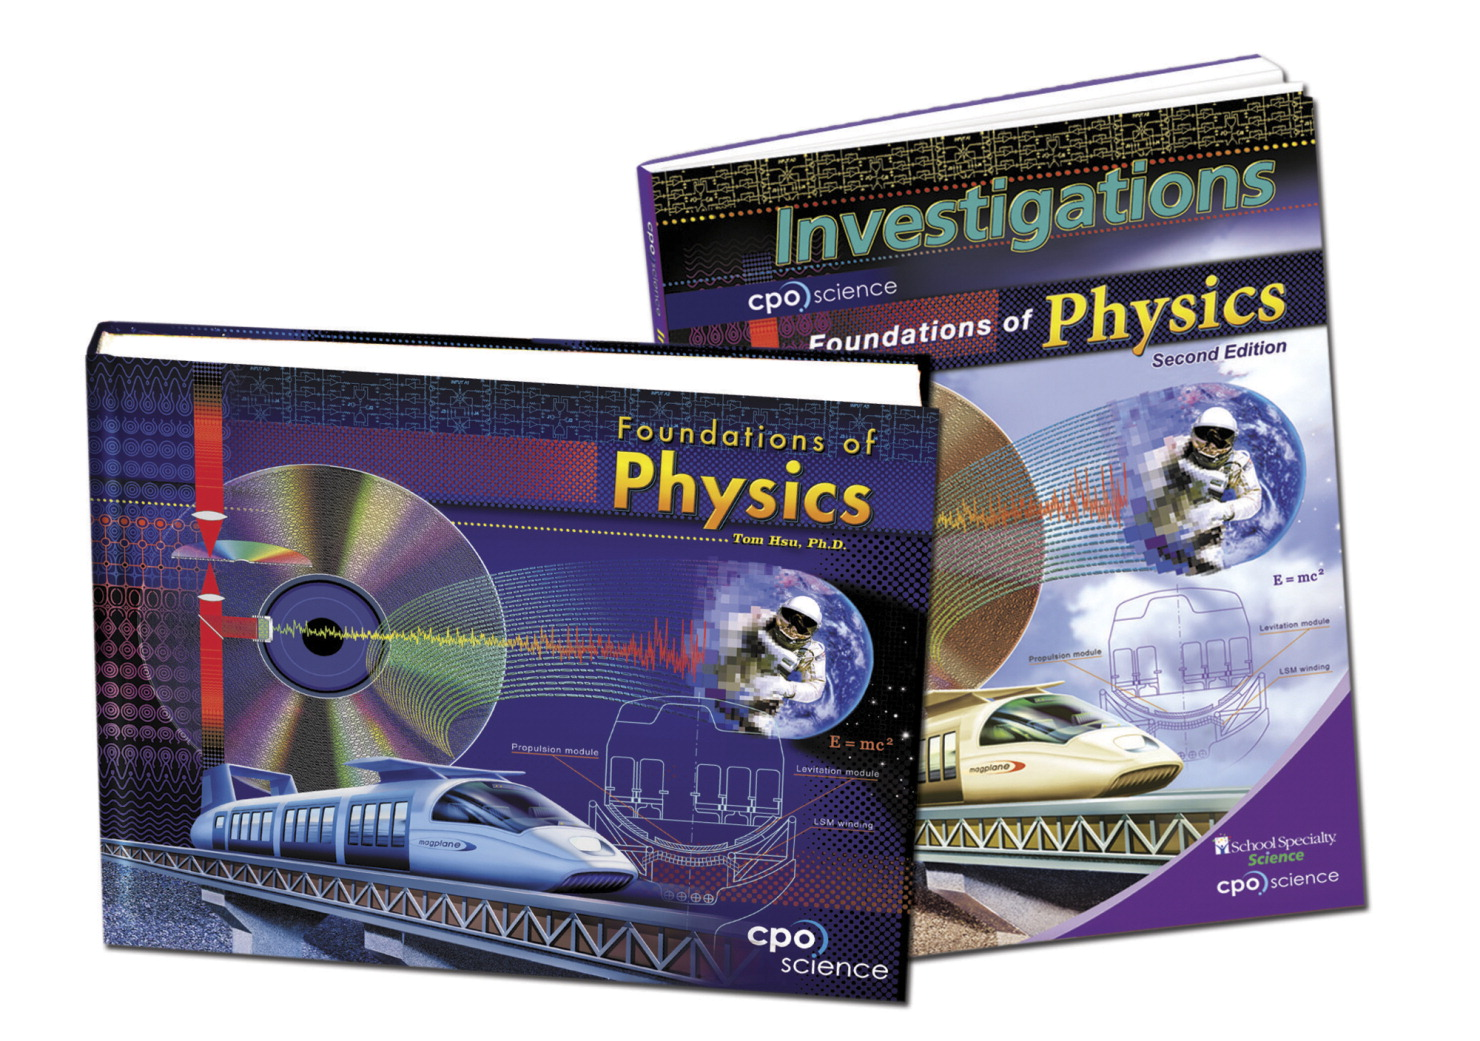 CPO Science Foundations of Physics 2nd Edition Student Book Set, Set of 2